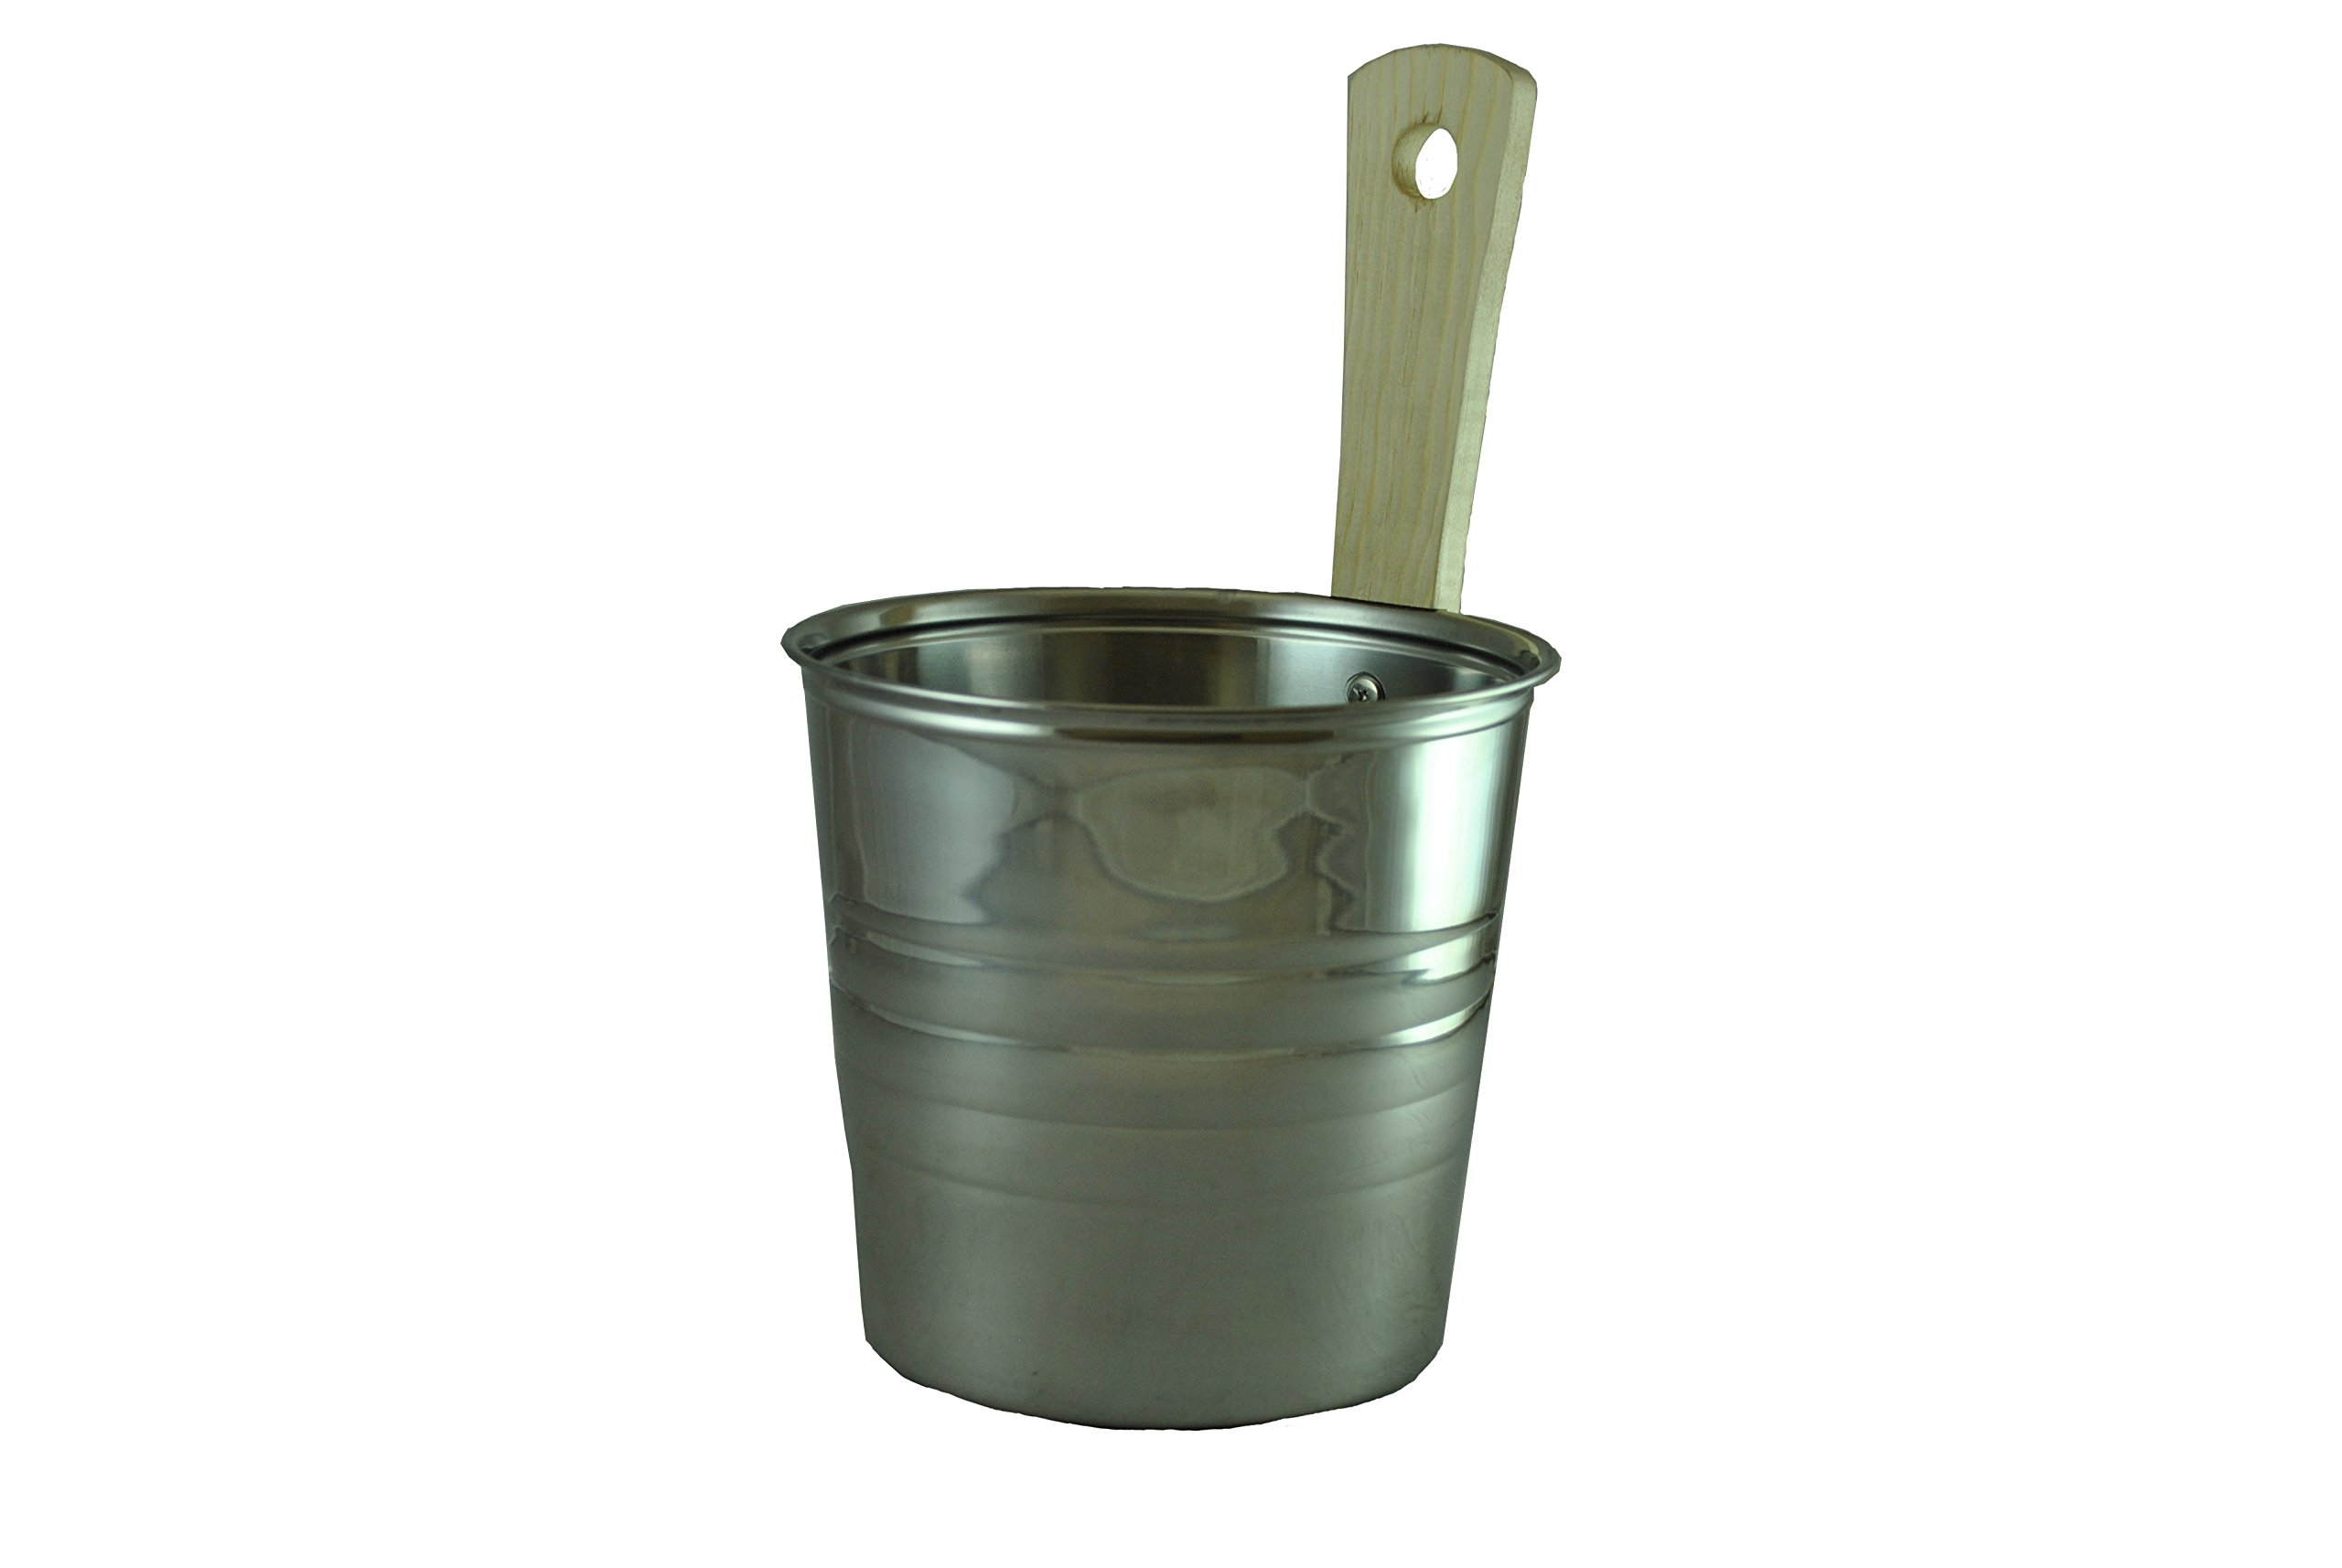 Northern Lights Group Steel Sauna Bucket - 3.5 Liters by Northern Lights Group